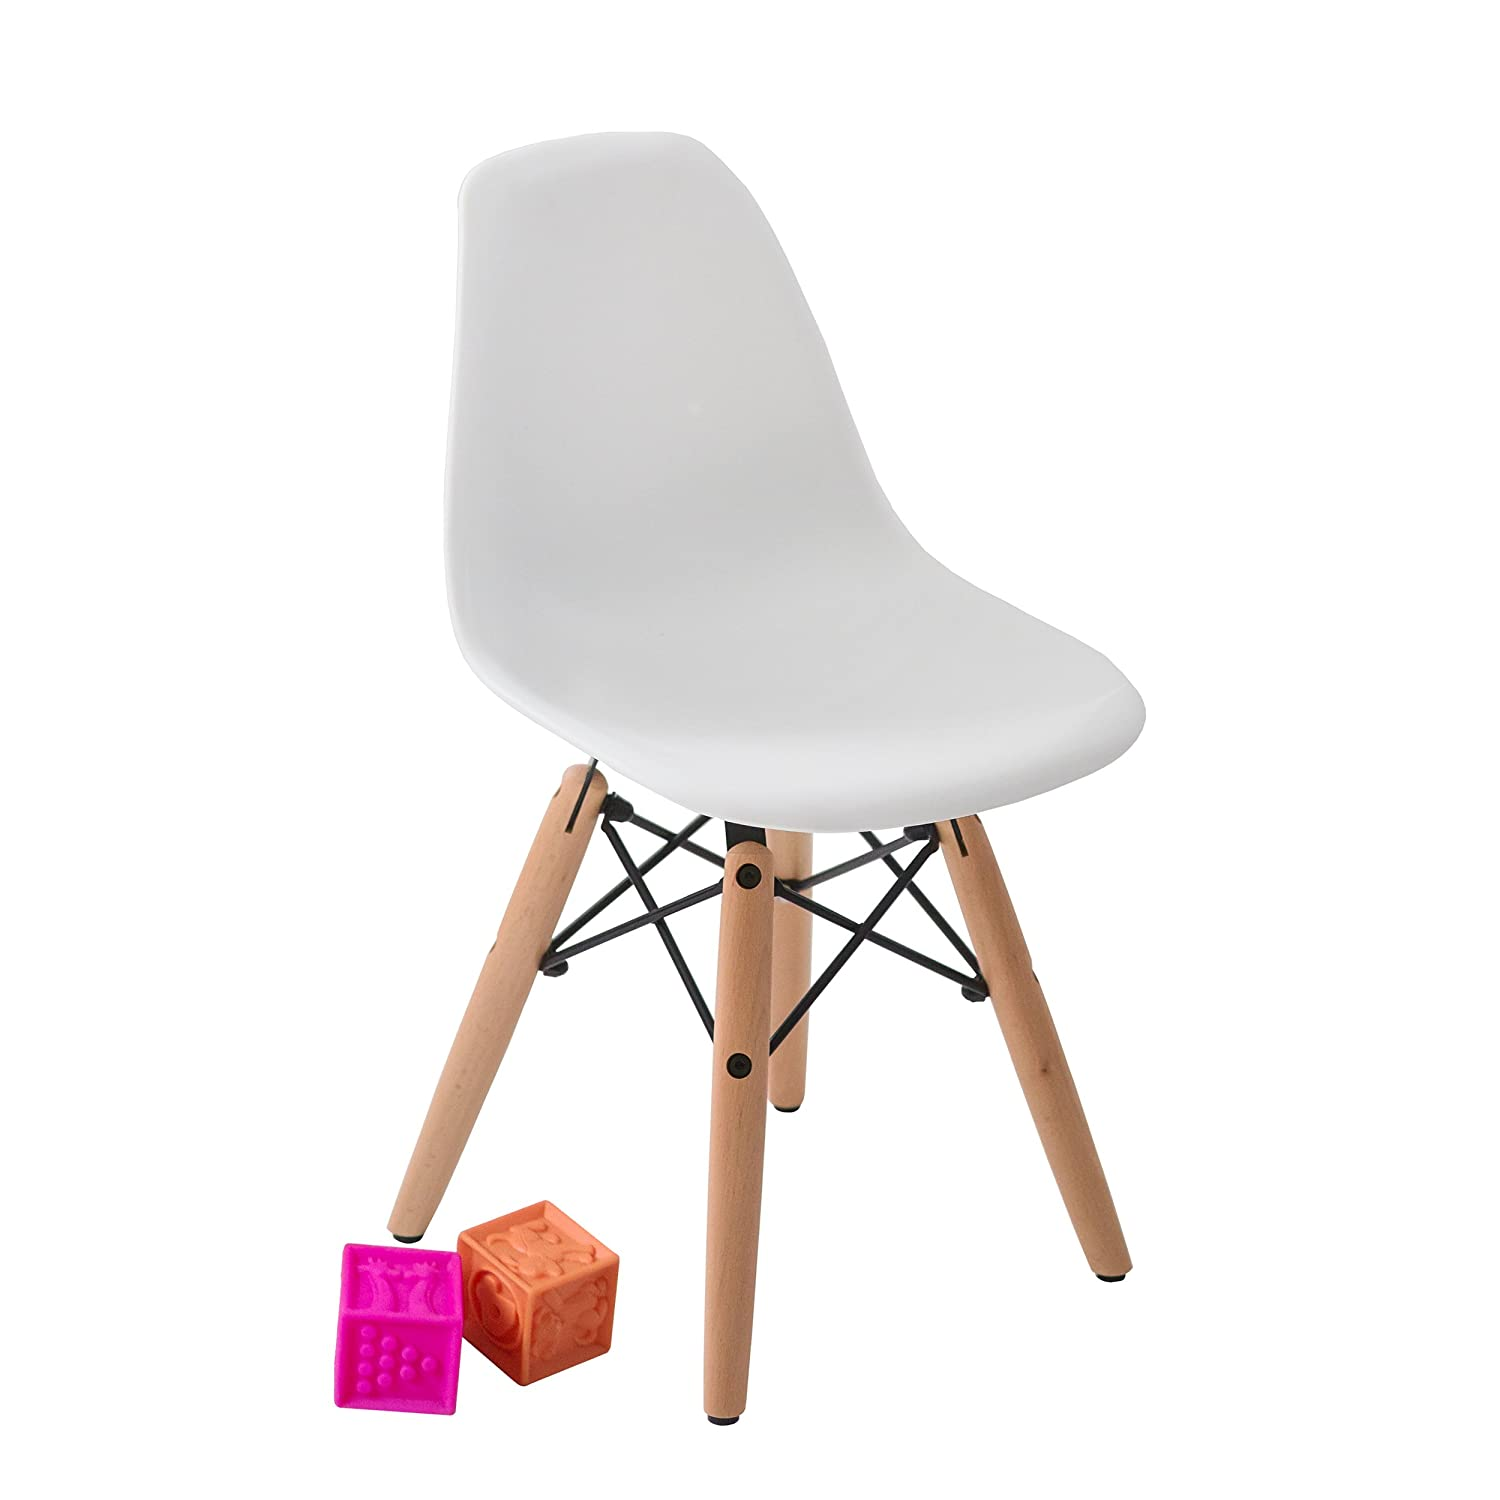 Wooden Legs Molded Plastic Chairs /& 1 Round MDF Table Steel Dowel Base With 2 Armless White Color Kids Table /& Chair Set for Children Curved Seats Modern Style Buschman Kids Furniture